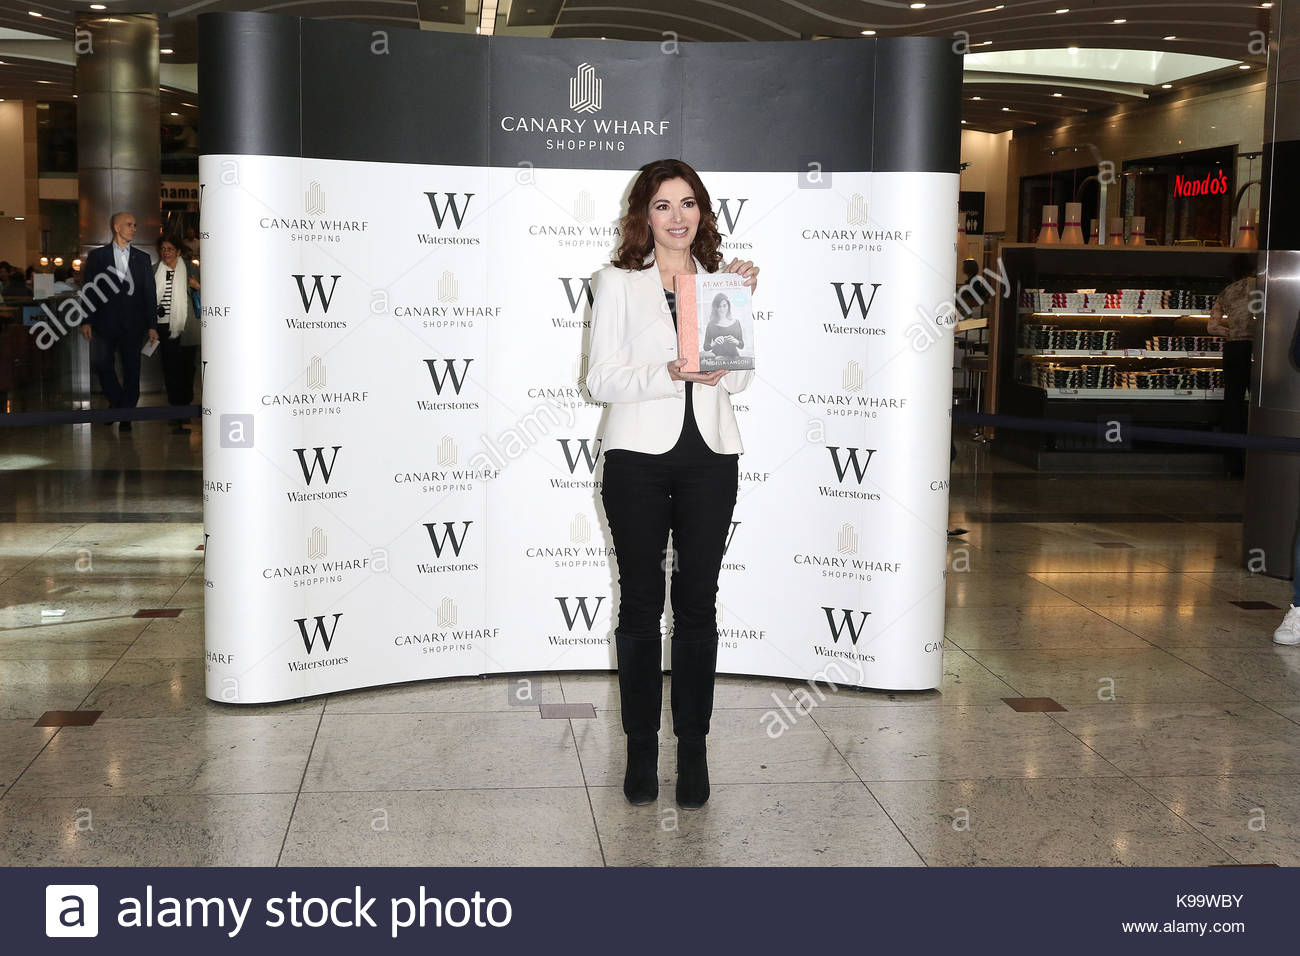 Celebrity chefs london uk newspapers